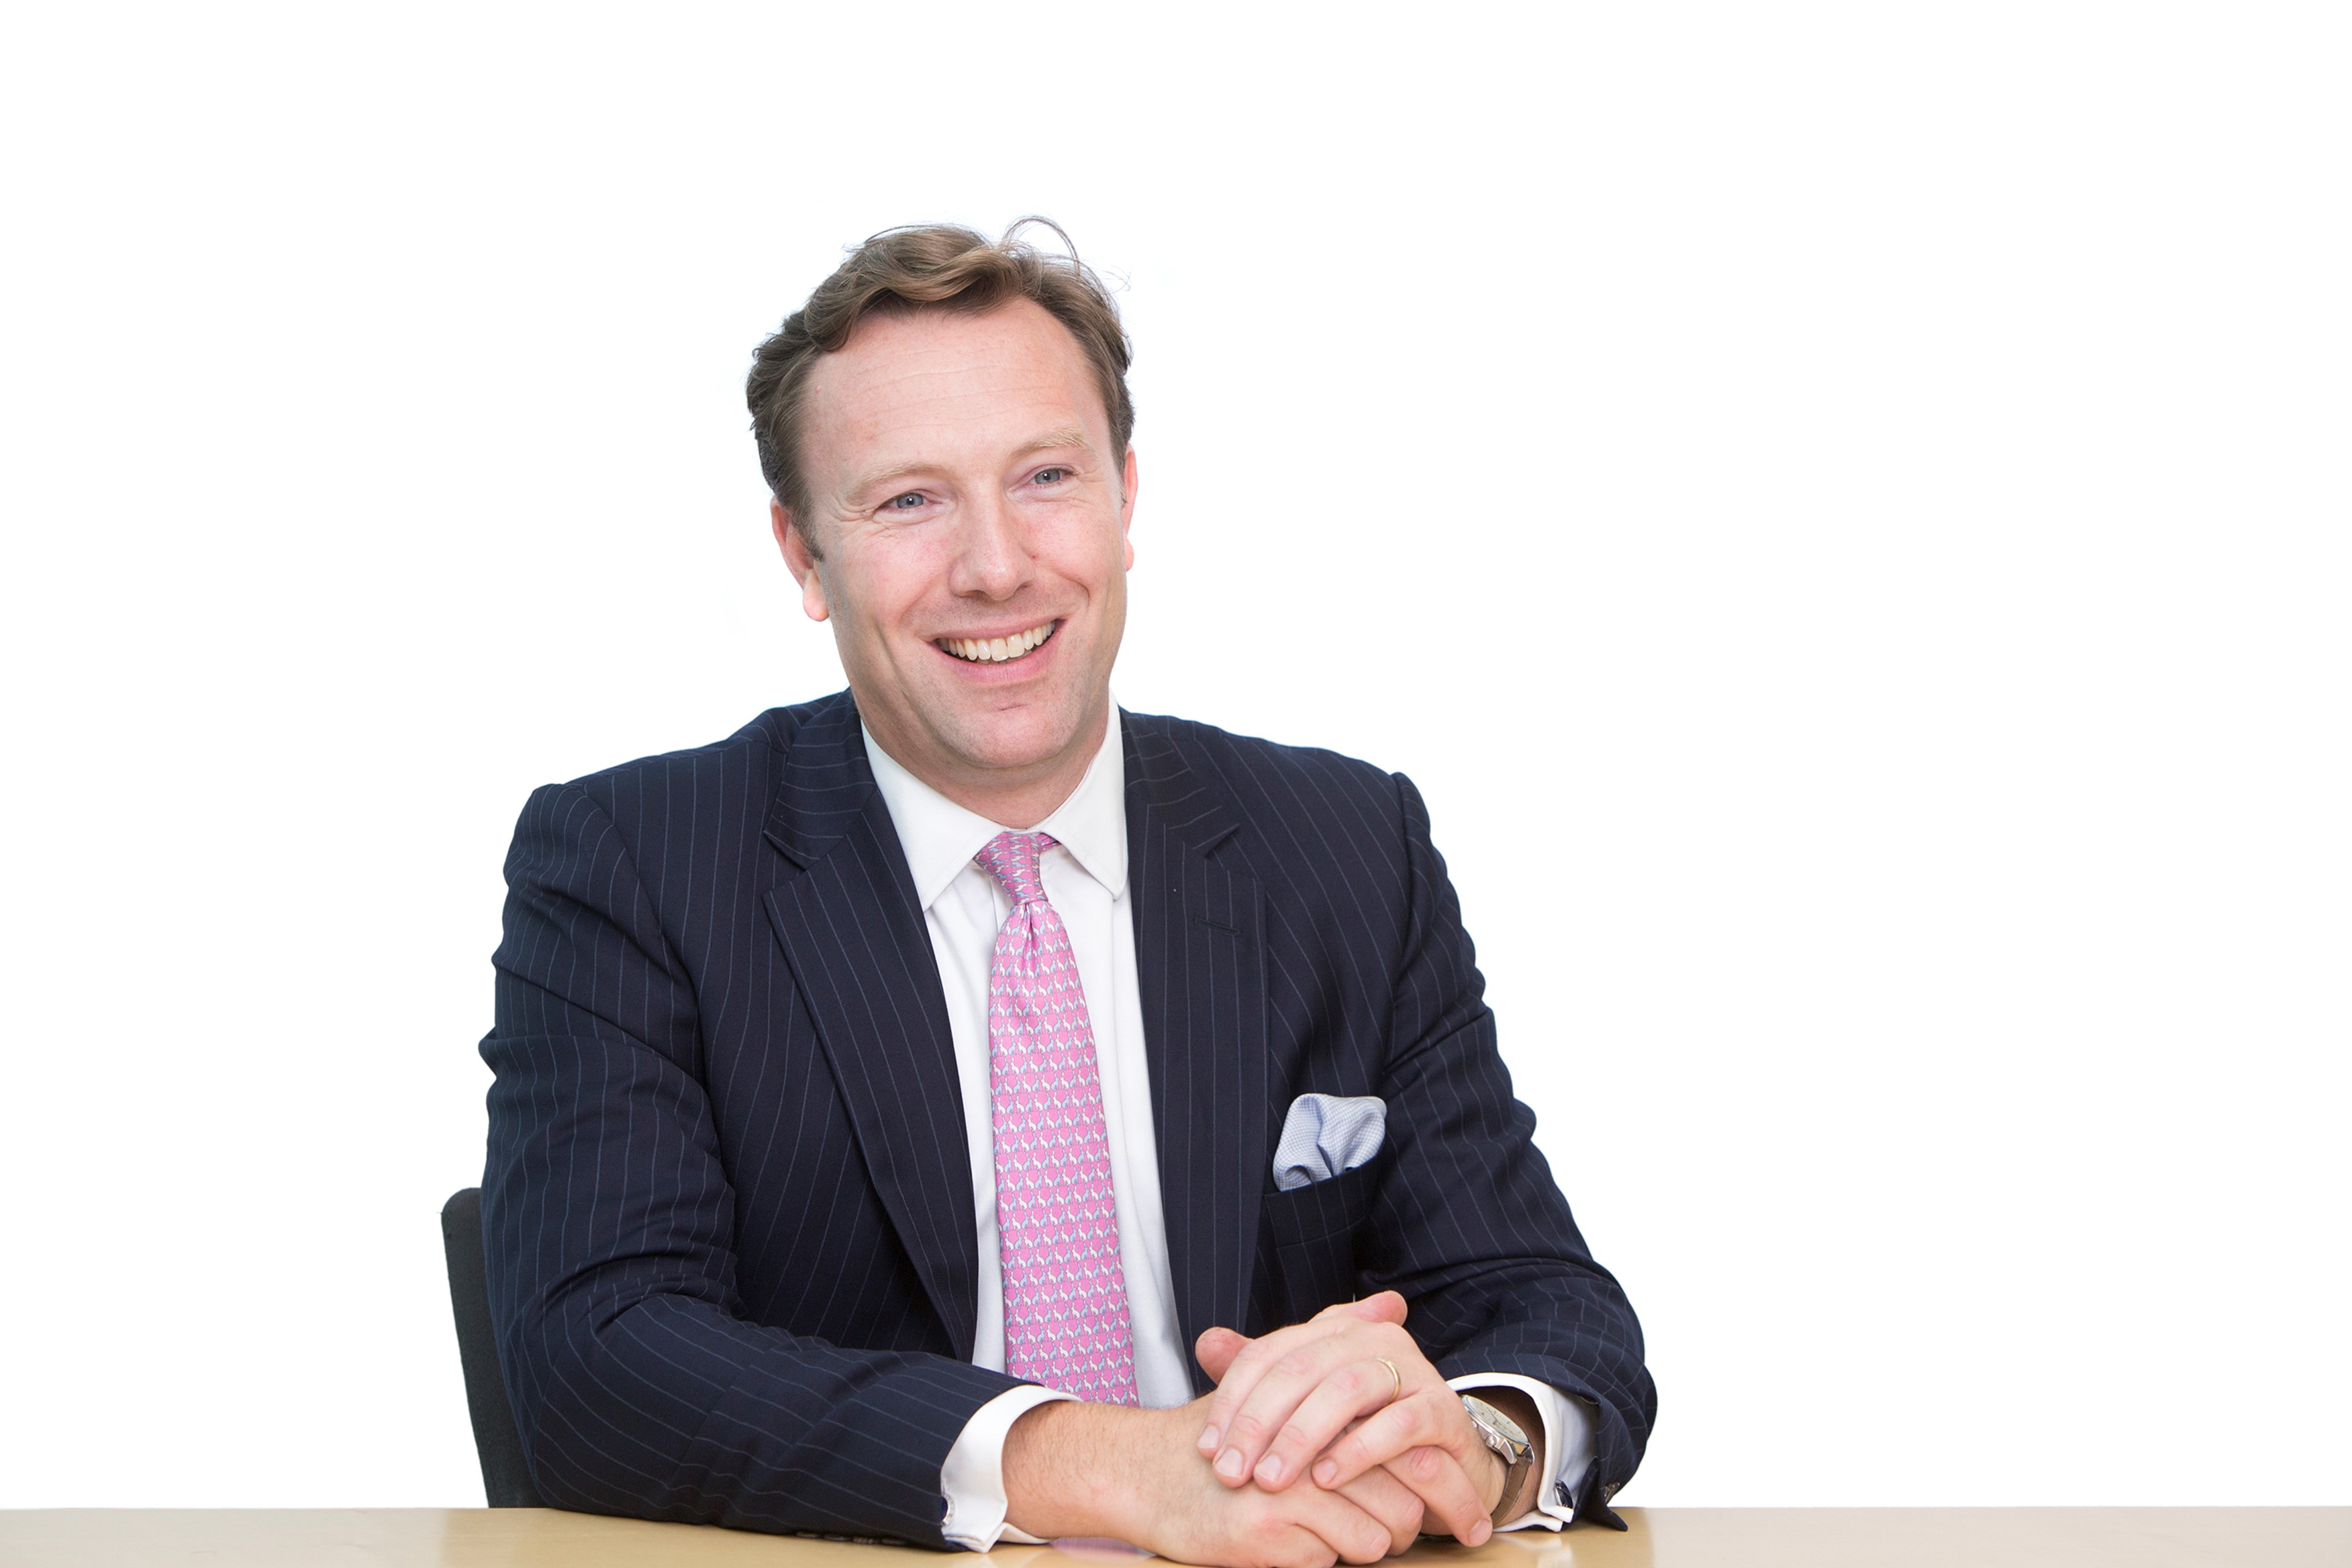 Former Barclays counsel joins Eversheds Sutherland